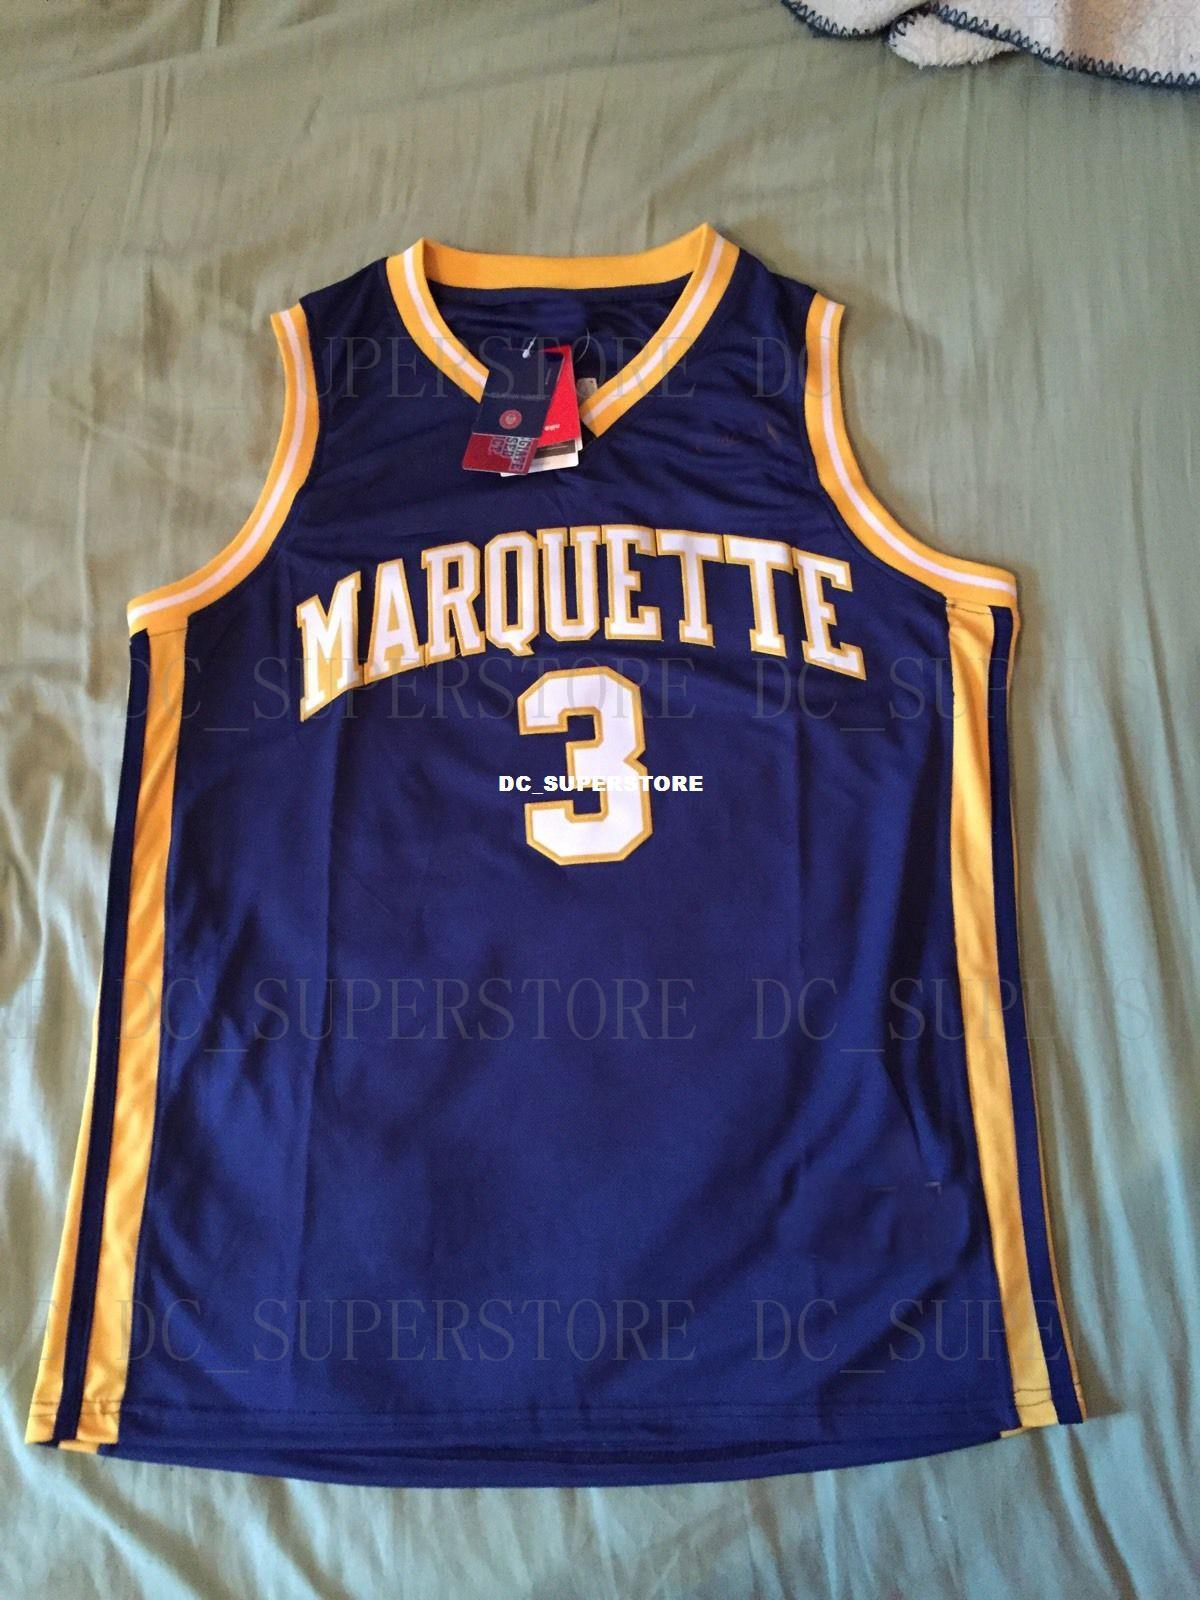 2019 Cheap Custom Vintage Dwayne Wade Marquette Golden Eagles NCAA  Basketball Jersey Stitch Customize Any Number Name MEN WOMEN YOUTH XS 5XL  From ... a06557cde6